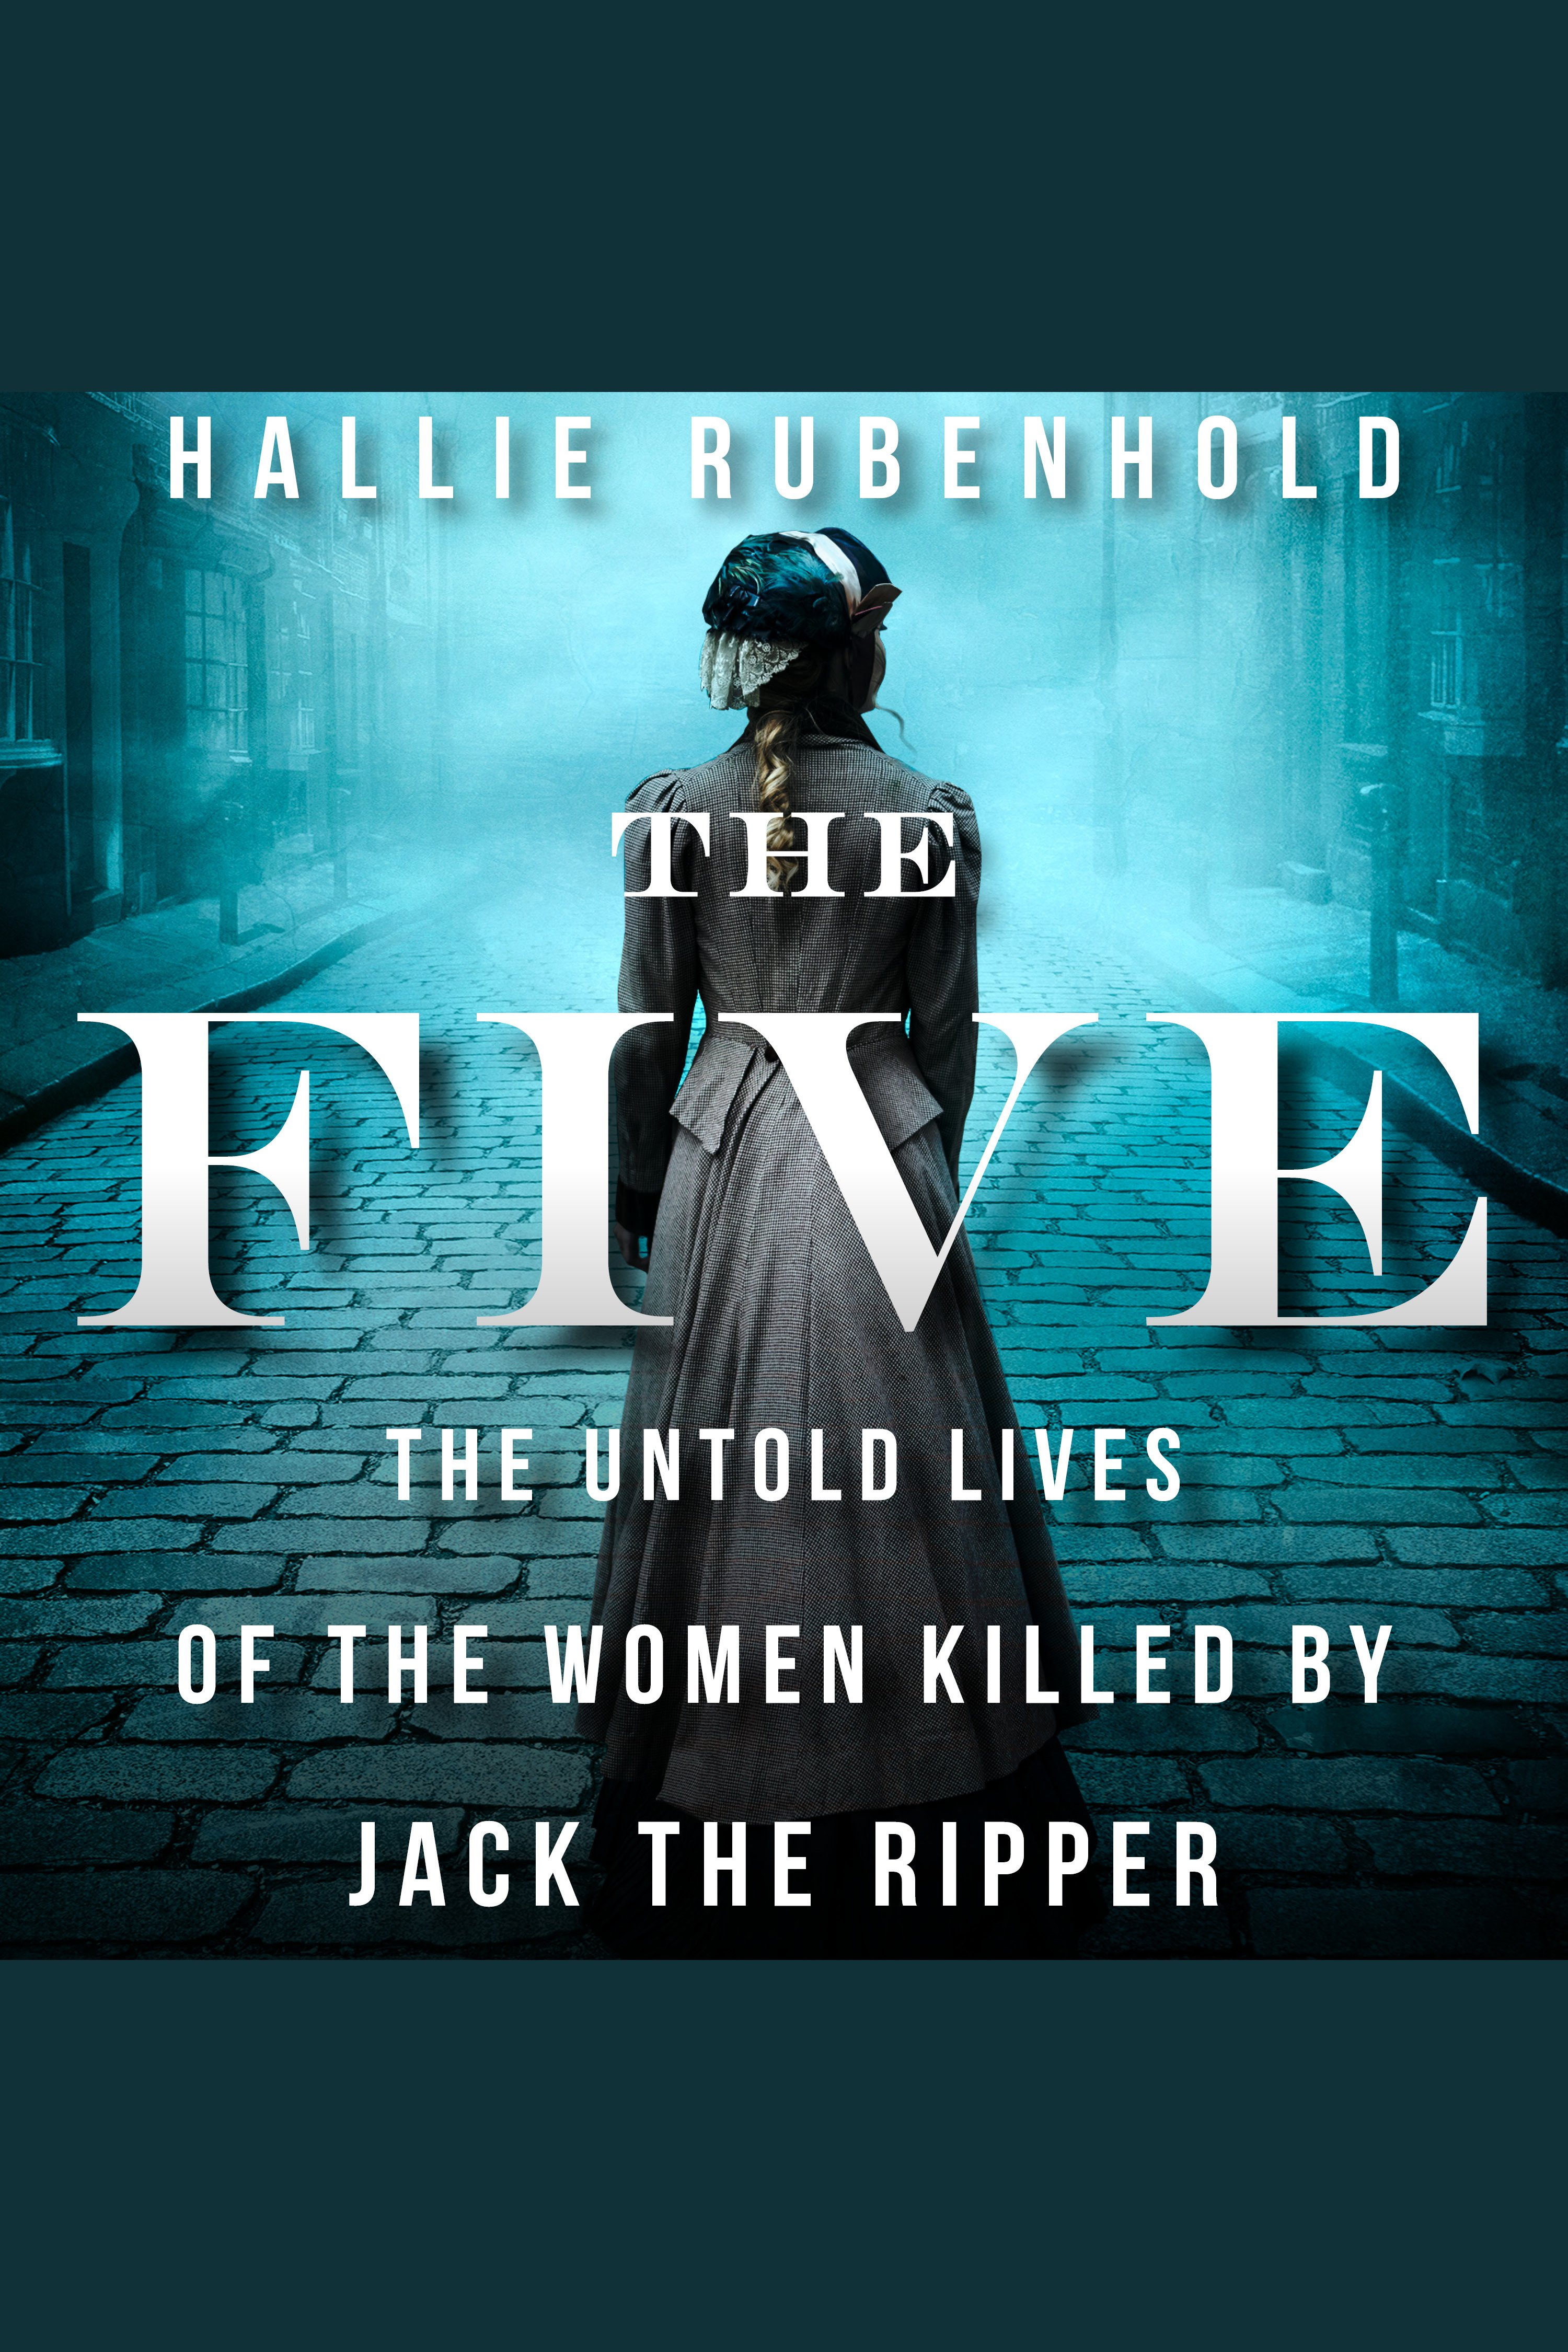 Five, The The Untold Lives of the Women Killed by Jack the Ripper